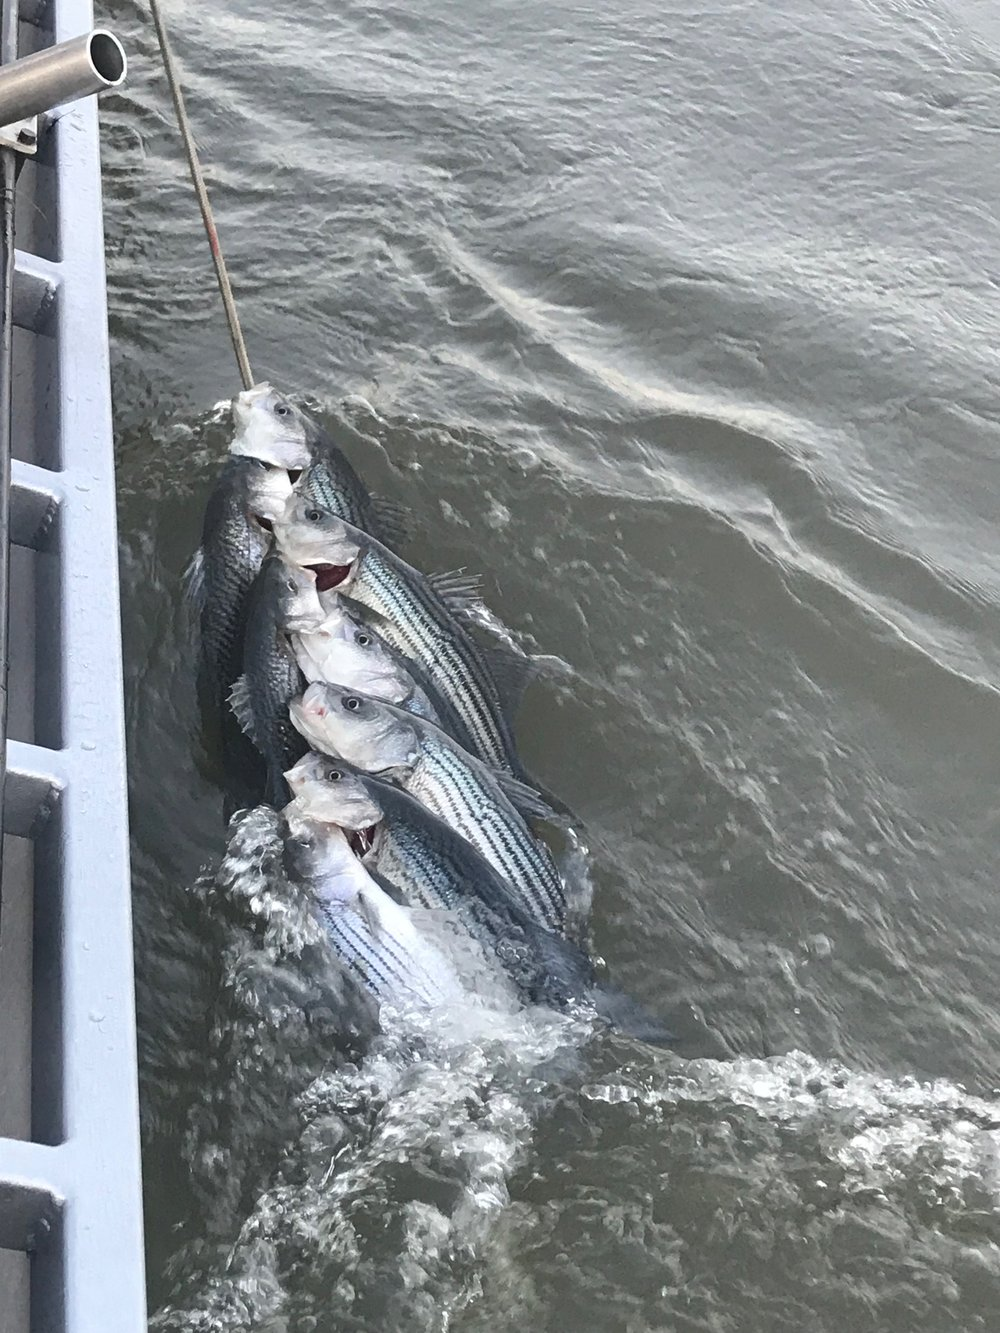 Sacramento River striped bass where on the bite this week big time for local fishing guides like Mike Rasmussen who shows off his clients early limits before sunrise this week on the Sacramento River below the Tisdale, Ca boat launch.